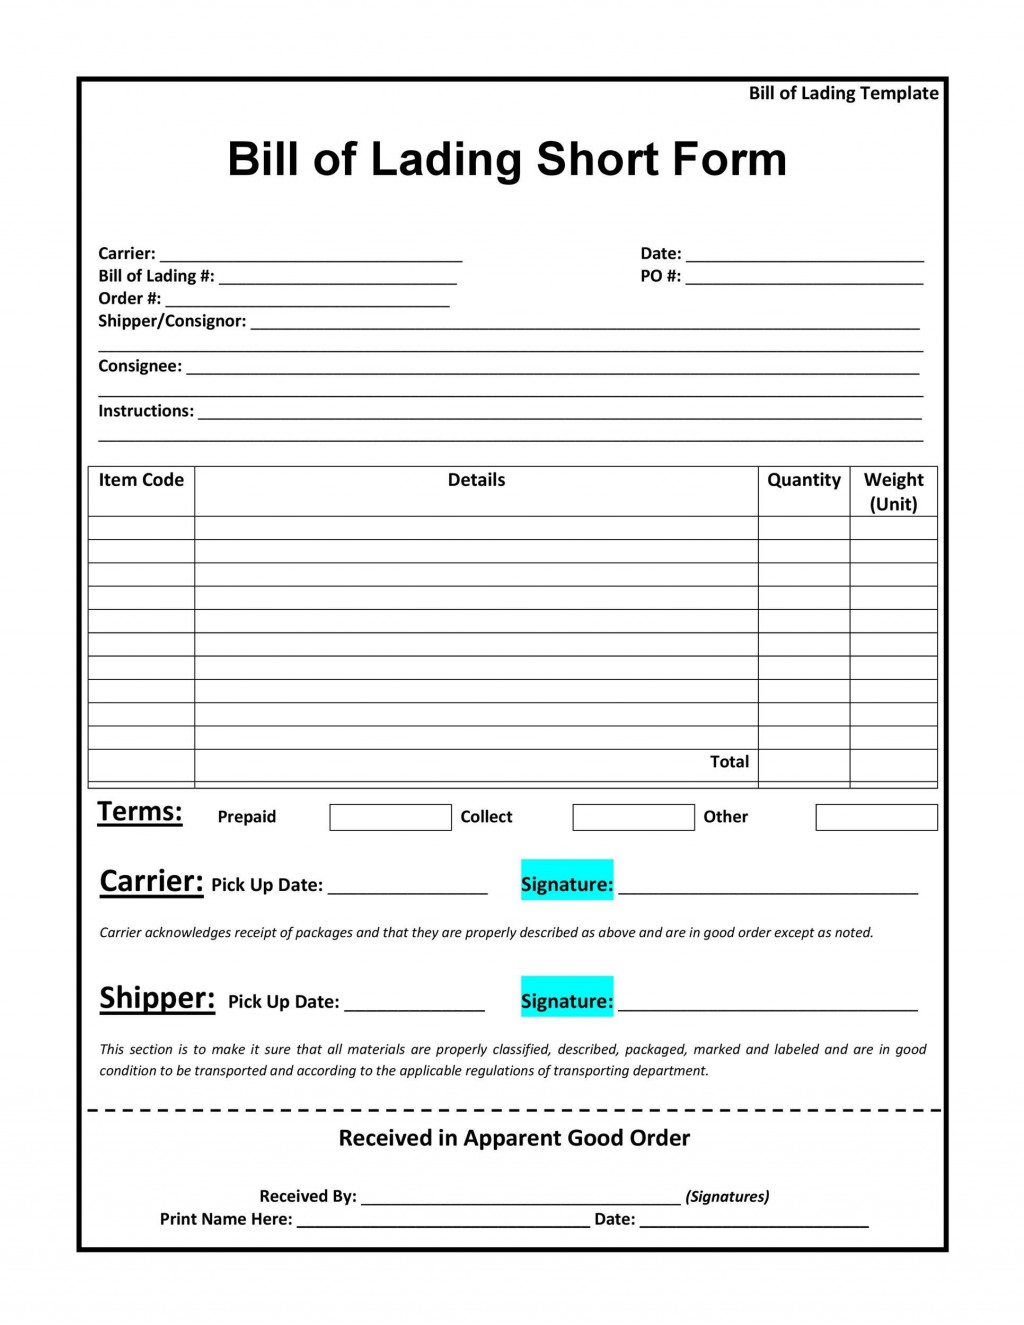 008 Archaicawful Straight Bill Of Lading Template Concept  Canada Word Free PrintableLarge